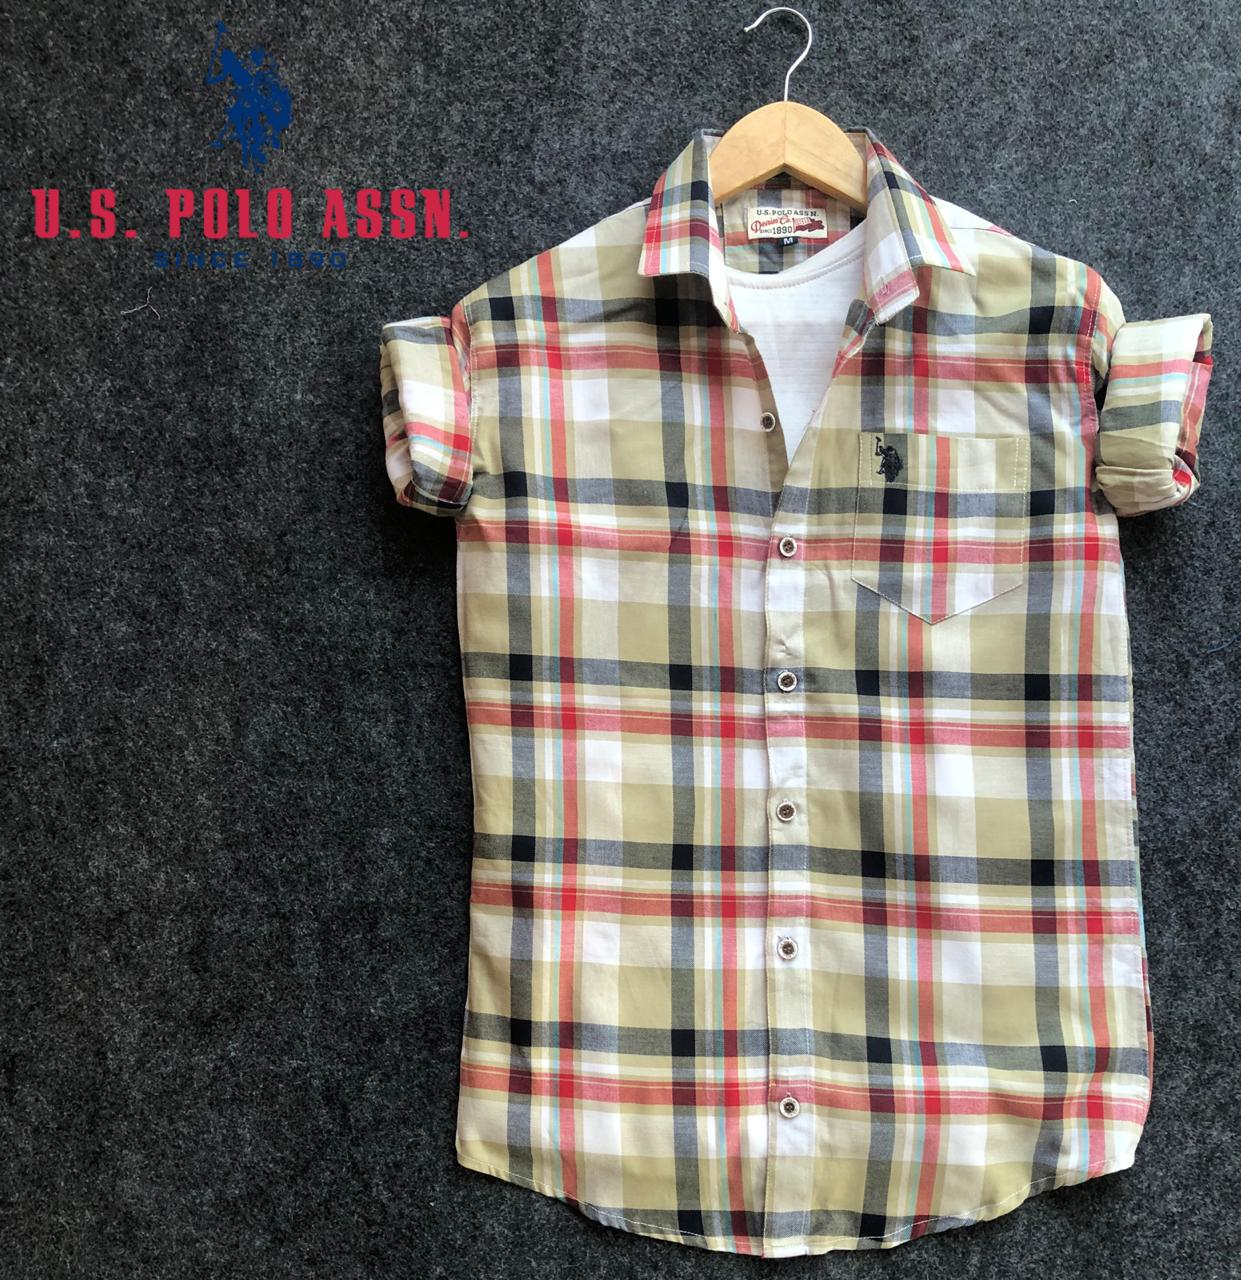 Quick mart US Polo ASSN Check Shirts for Men